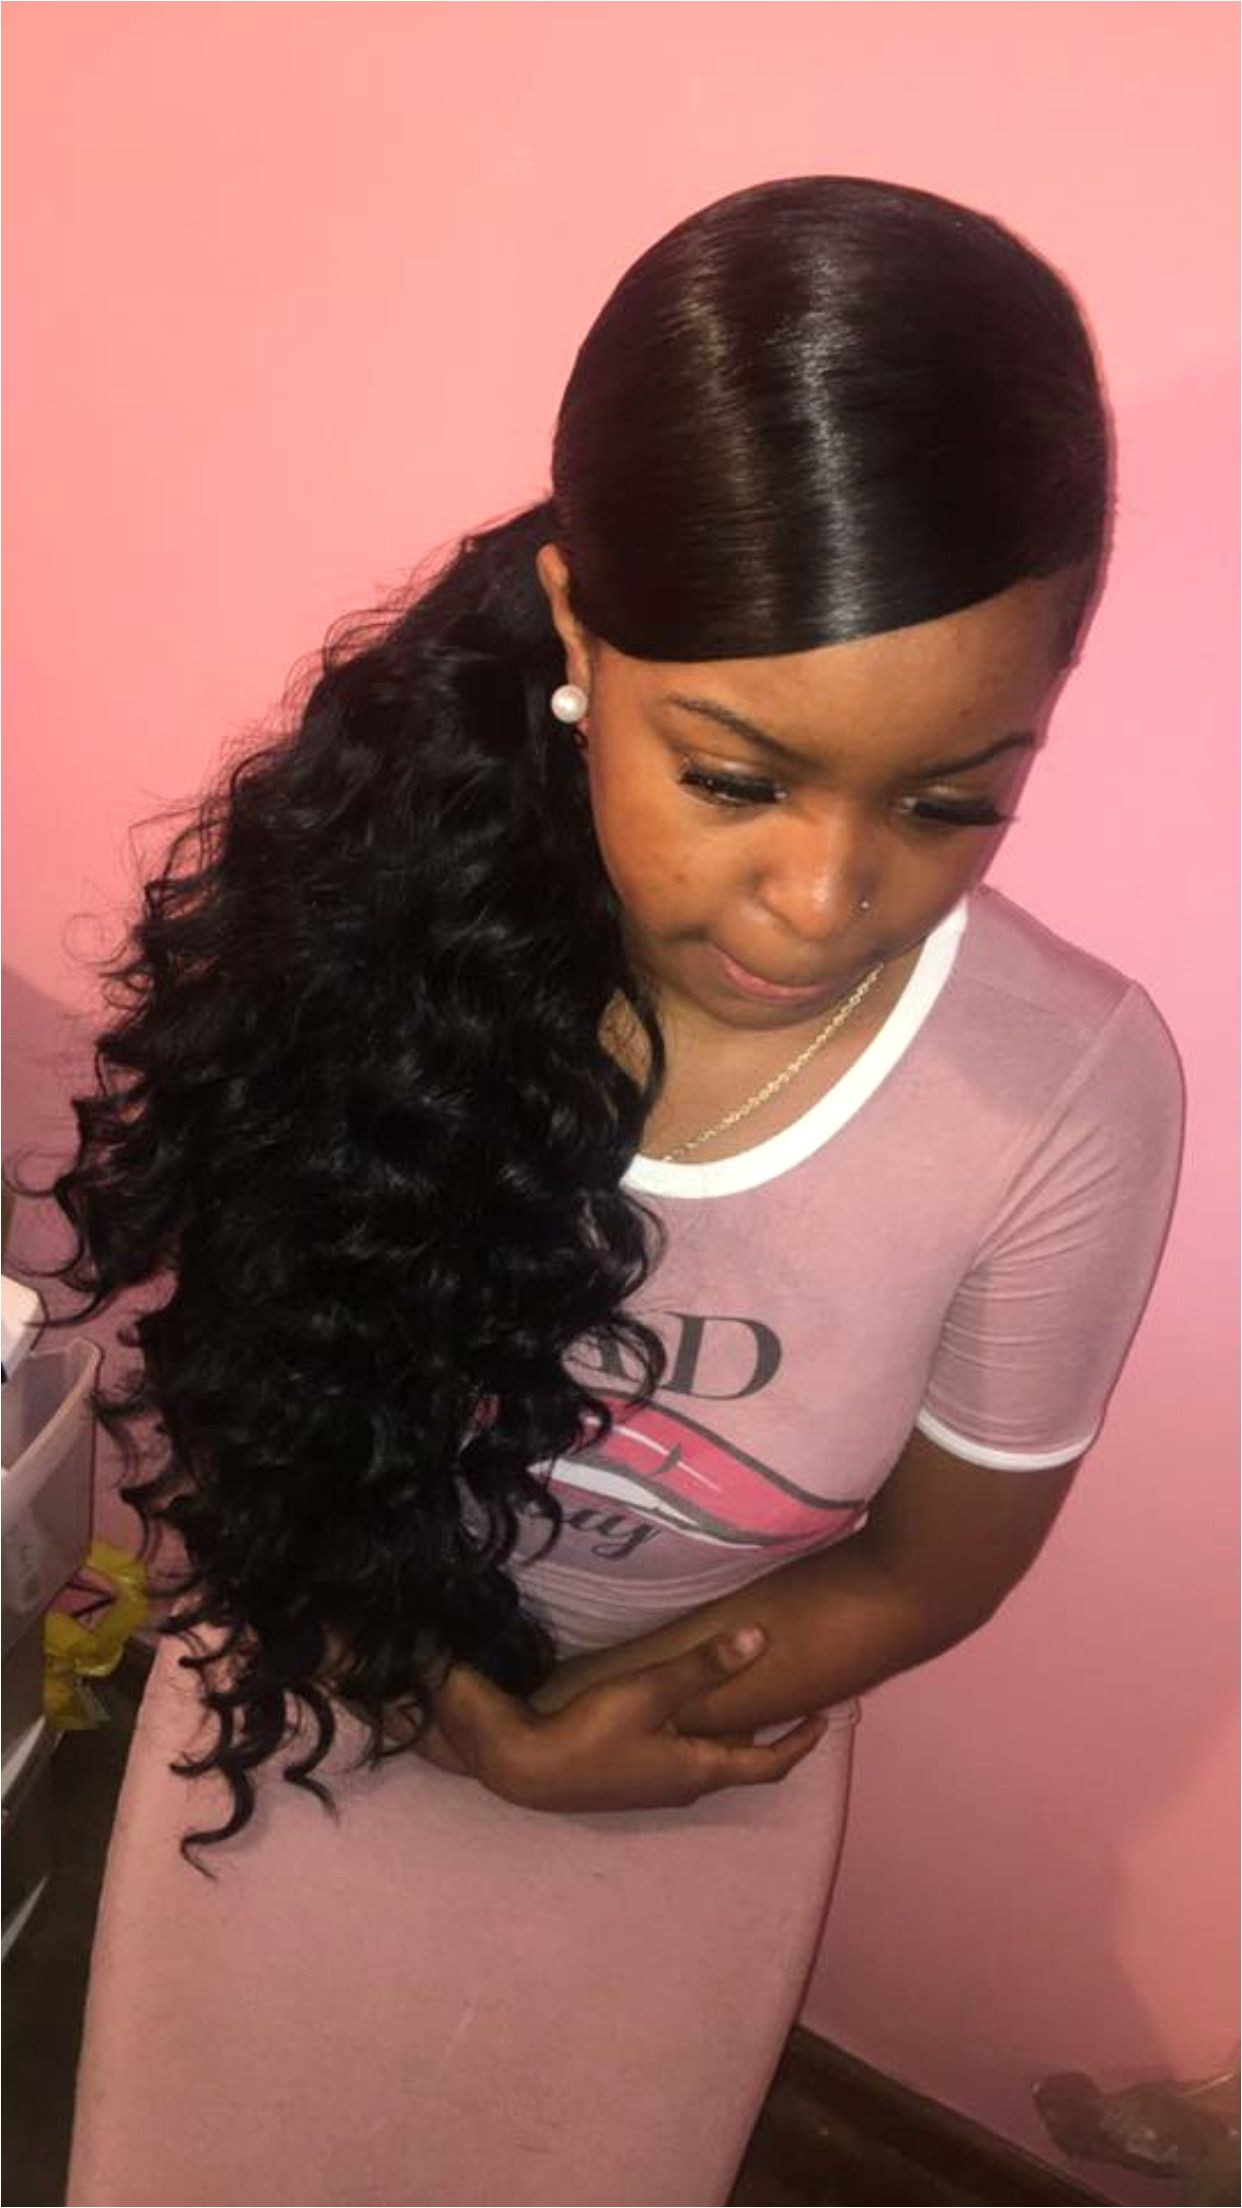 Hairstyles for 11 Year Old Black Girl New Beautiful Hairstyles for 11 Year Olds